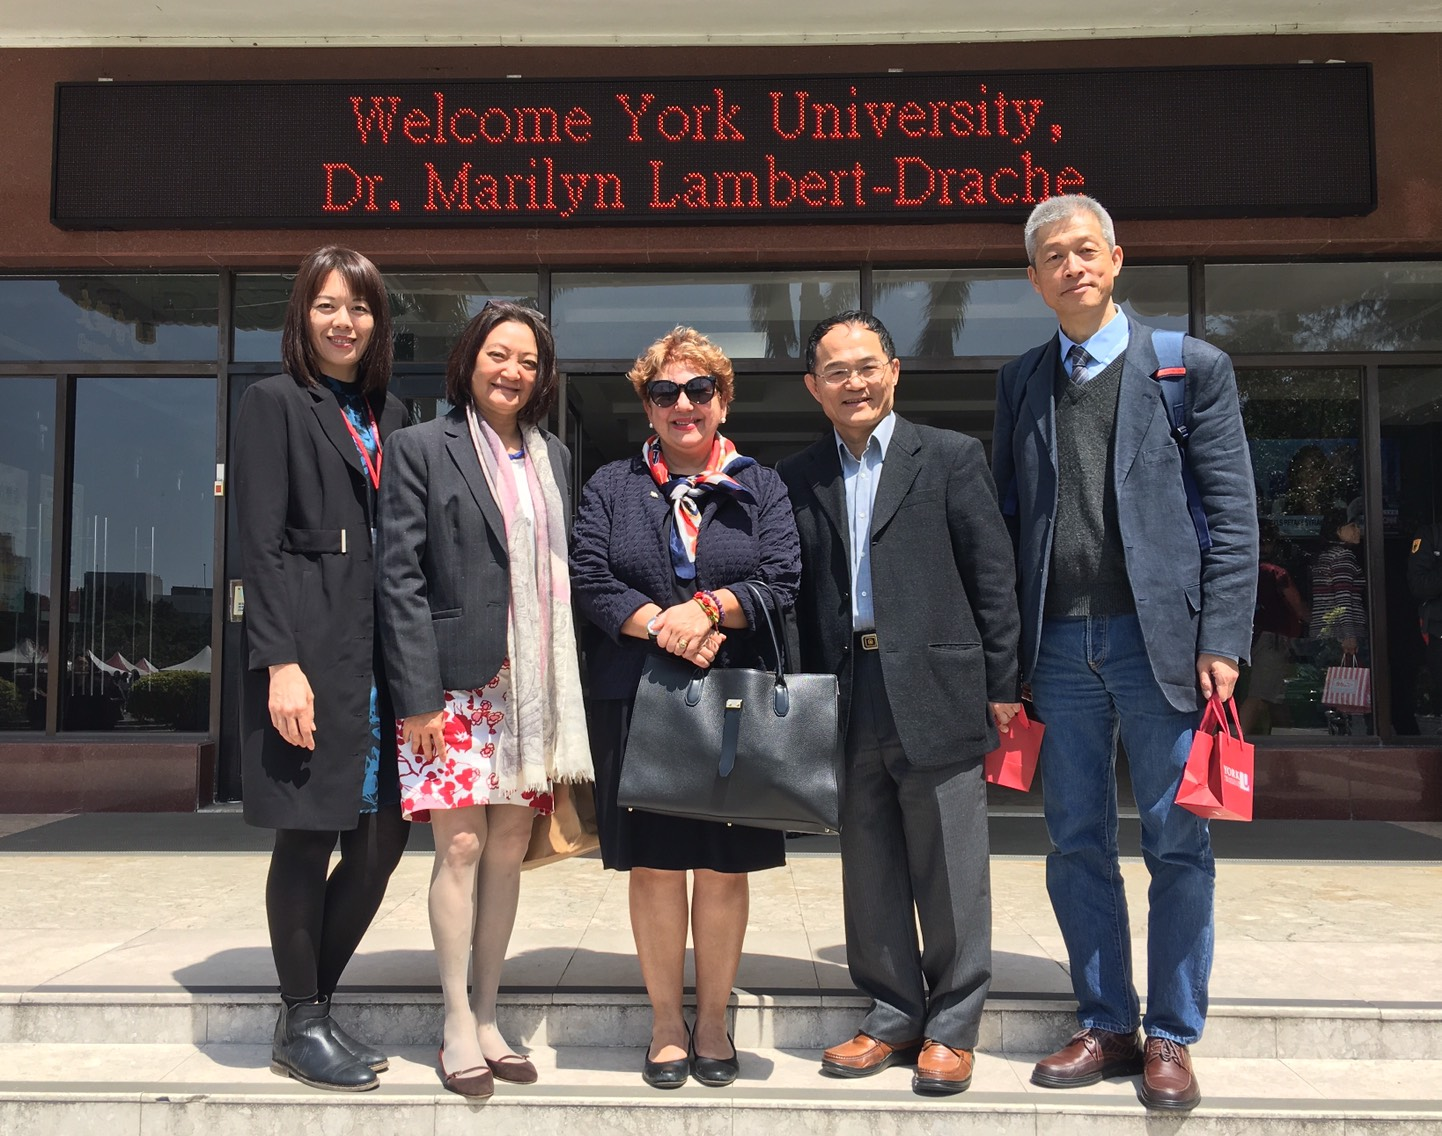 April 01, 2017 Dr. Marilyn Lambert-Drache, AVP International (Center) is welcomed by Tamkang University, Taiwan